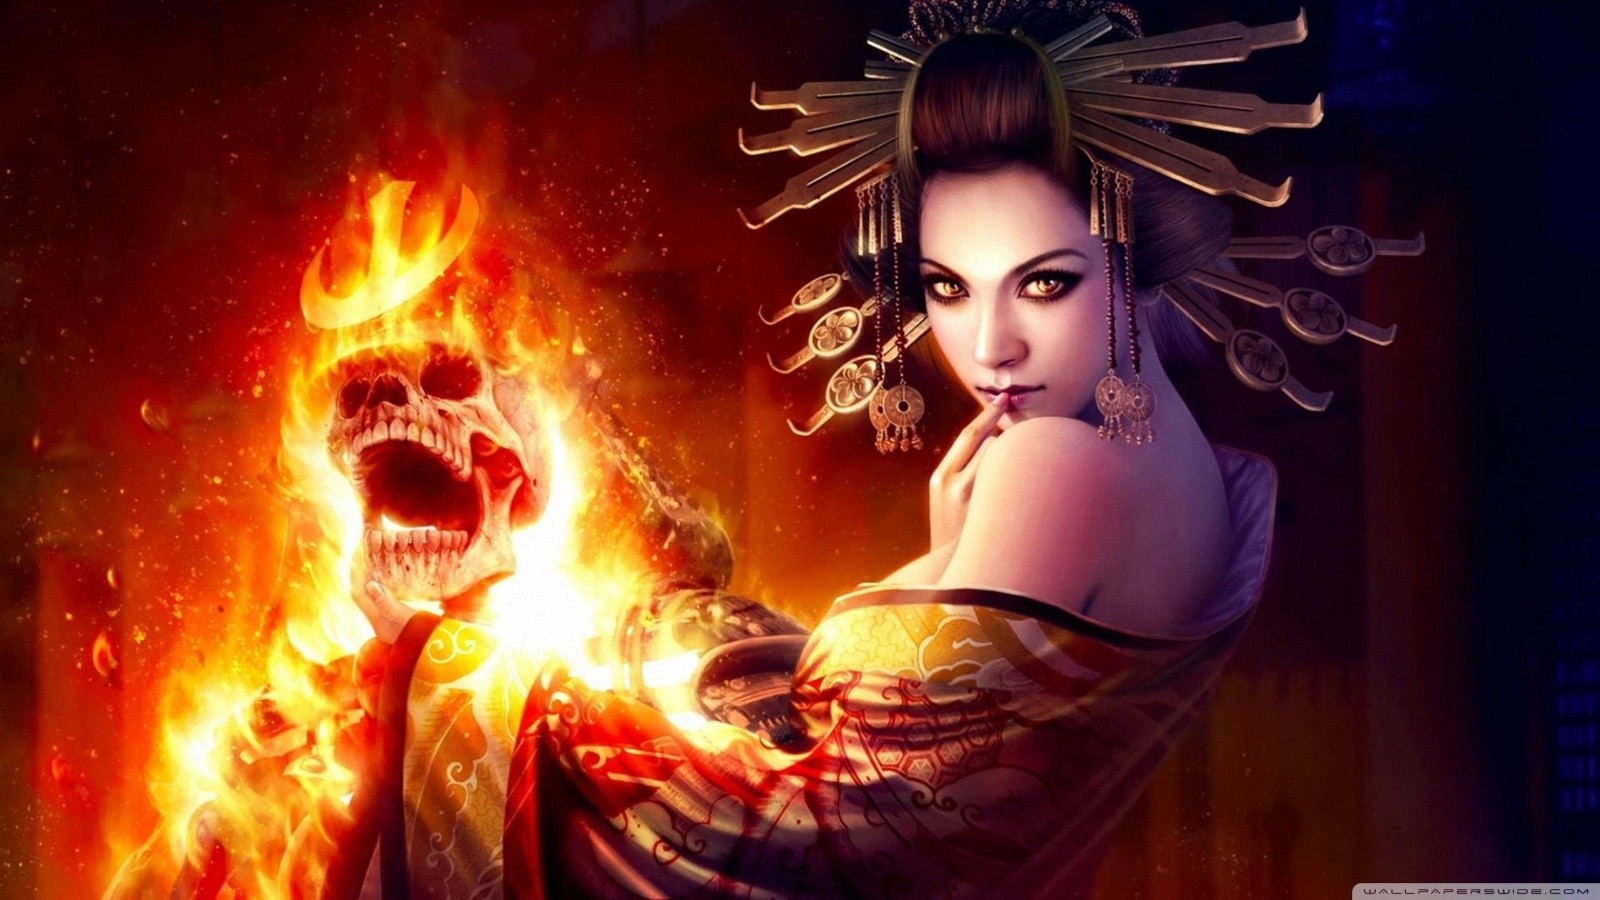 women witch skulls fire fantasy art